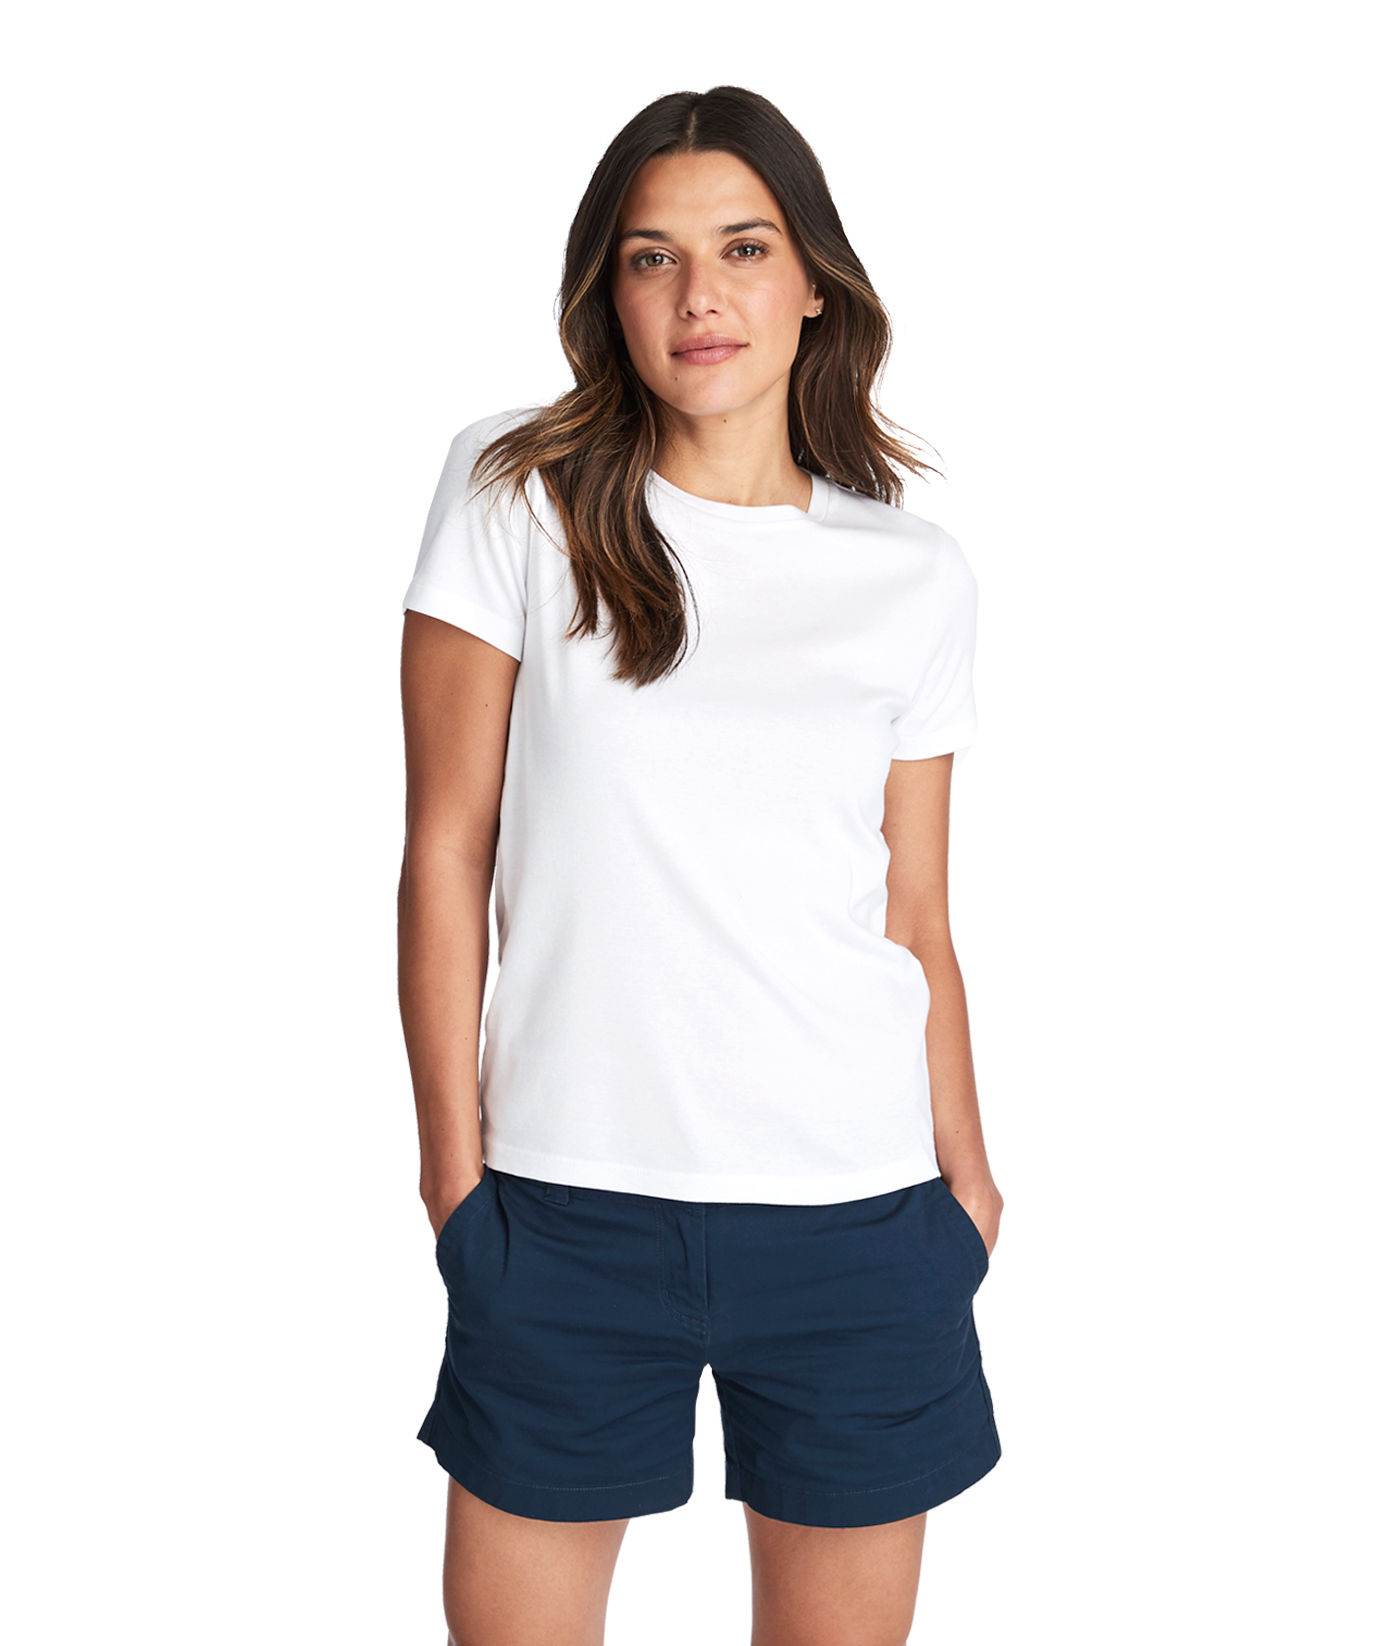 Simple Crewneck Short-Sleeve Tee